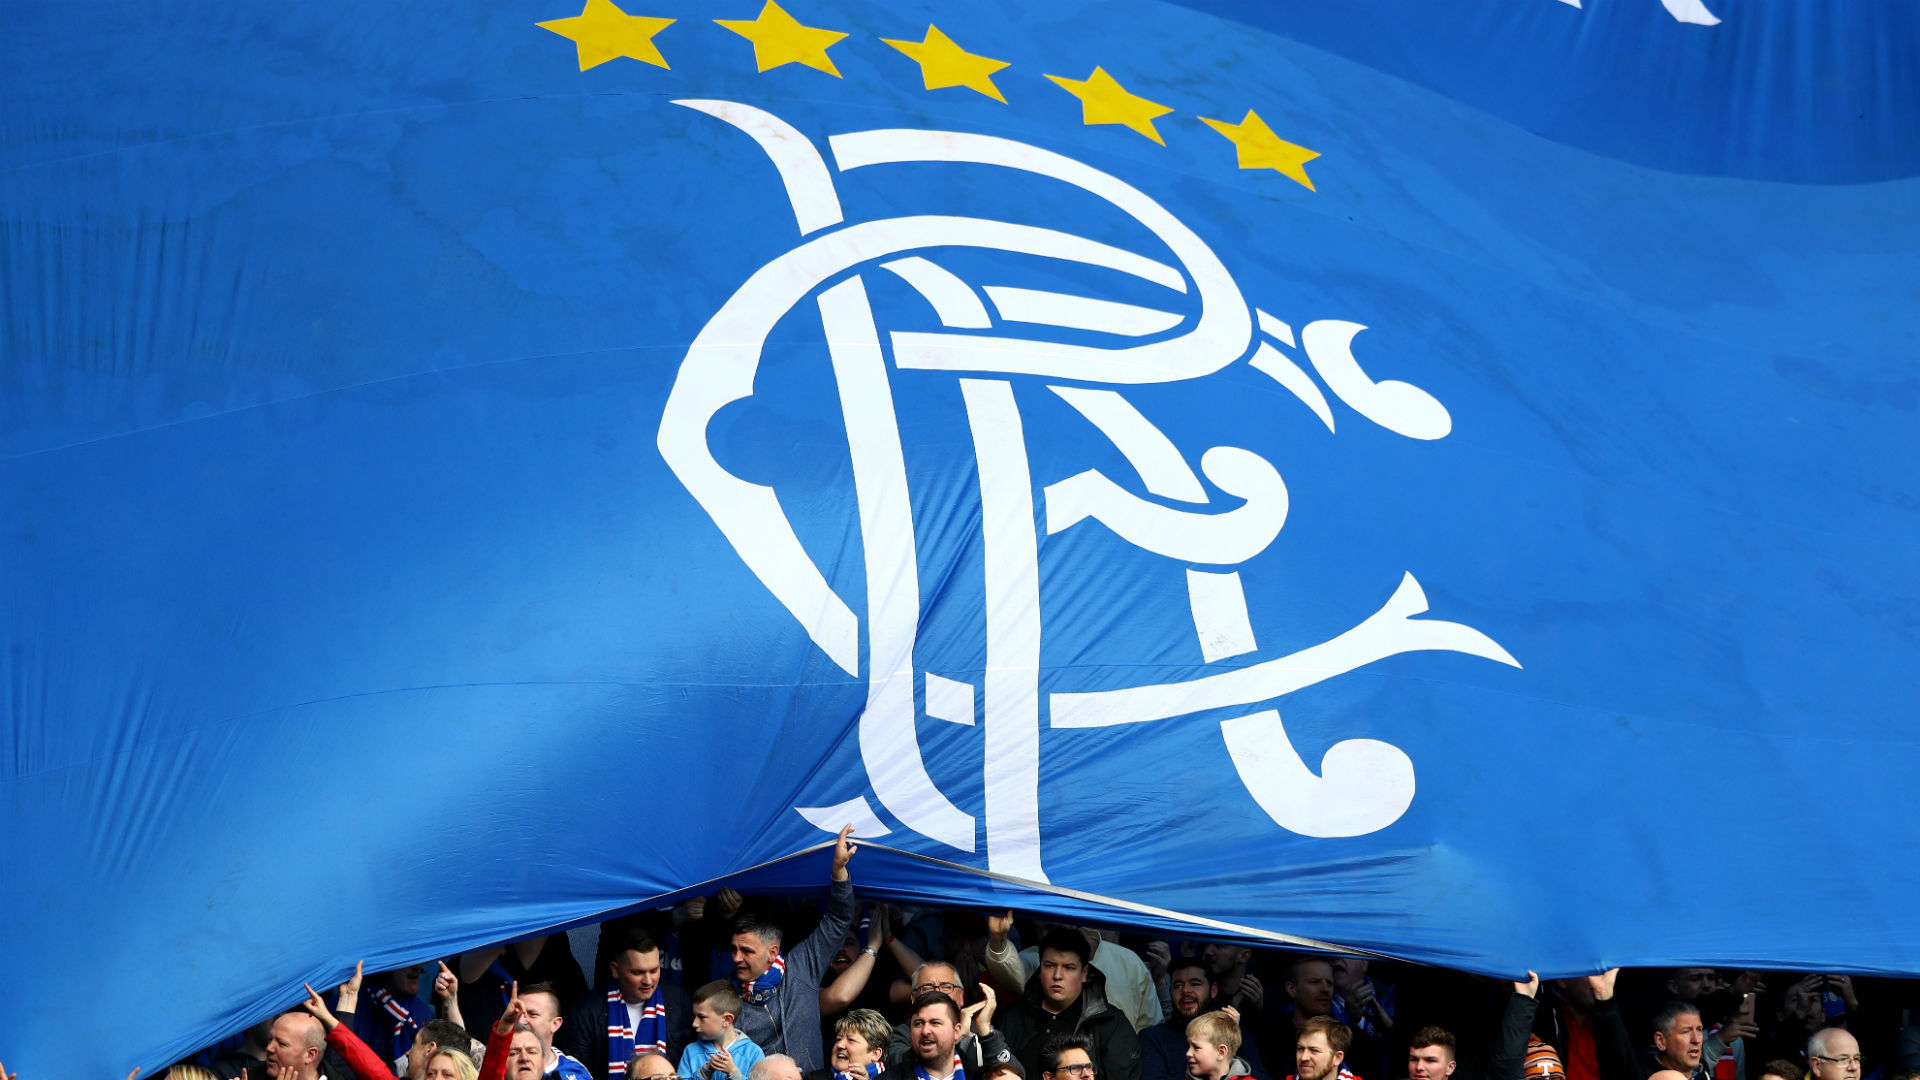 Rangers chants: Lyrics videos to the most popular Ibrox songs